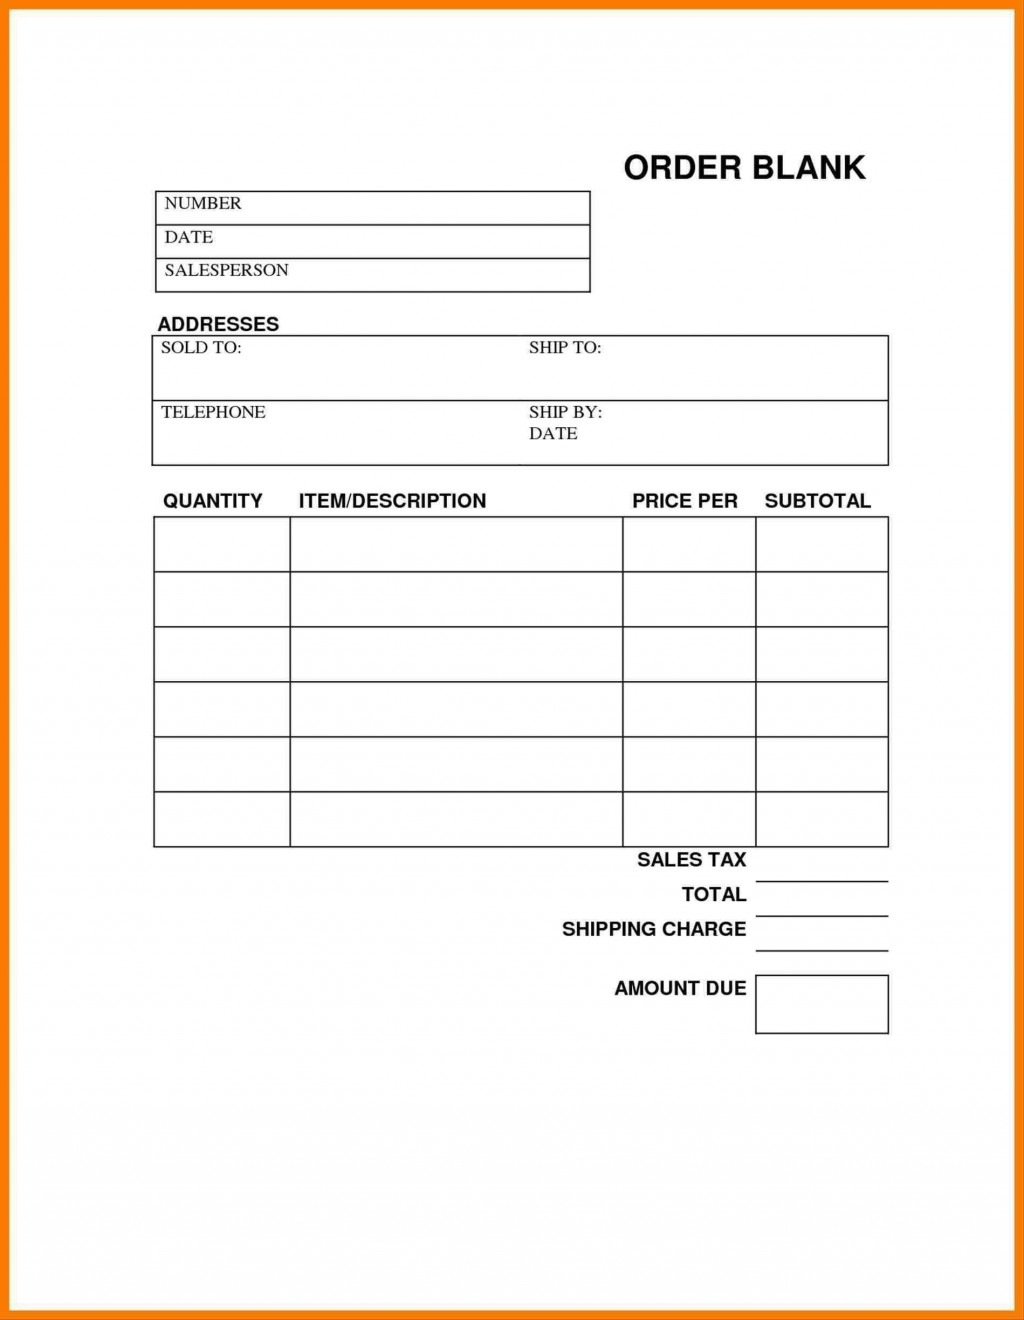 004 Fearsome Order Form Template Free Example  Application Shirt Word CustomLarge